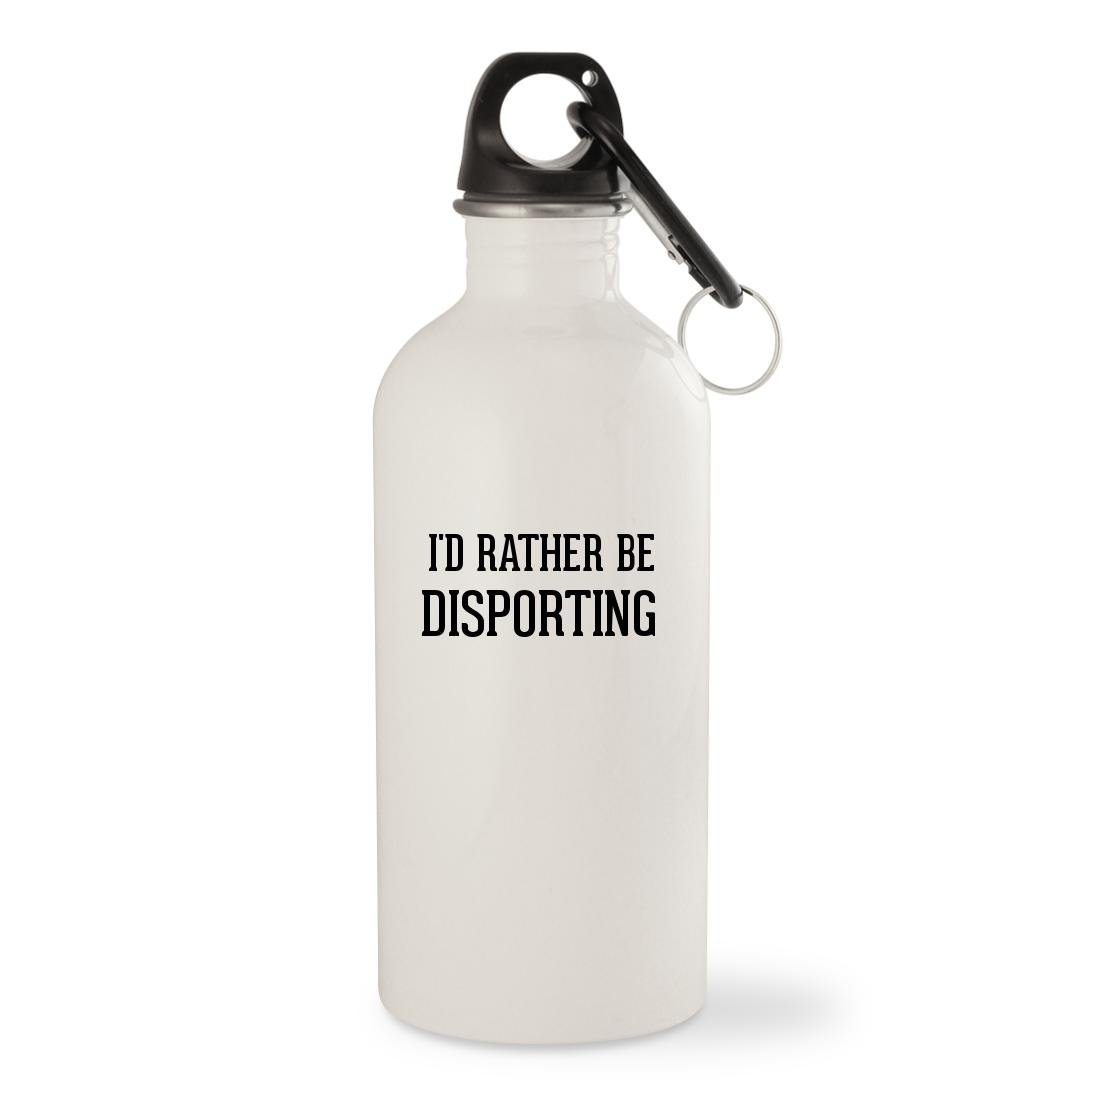 I'd Rather Be DISPORTING - White 20oz Stainless Steel Water Bottle with Carabiner